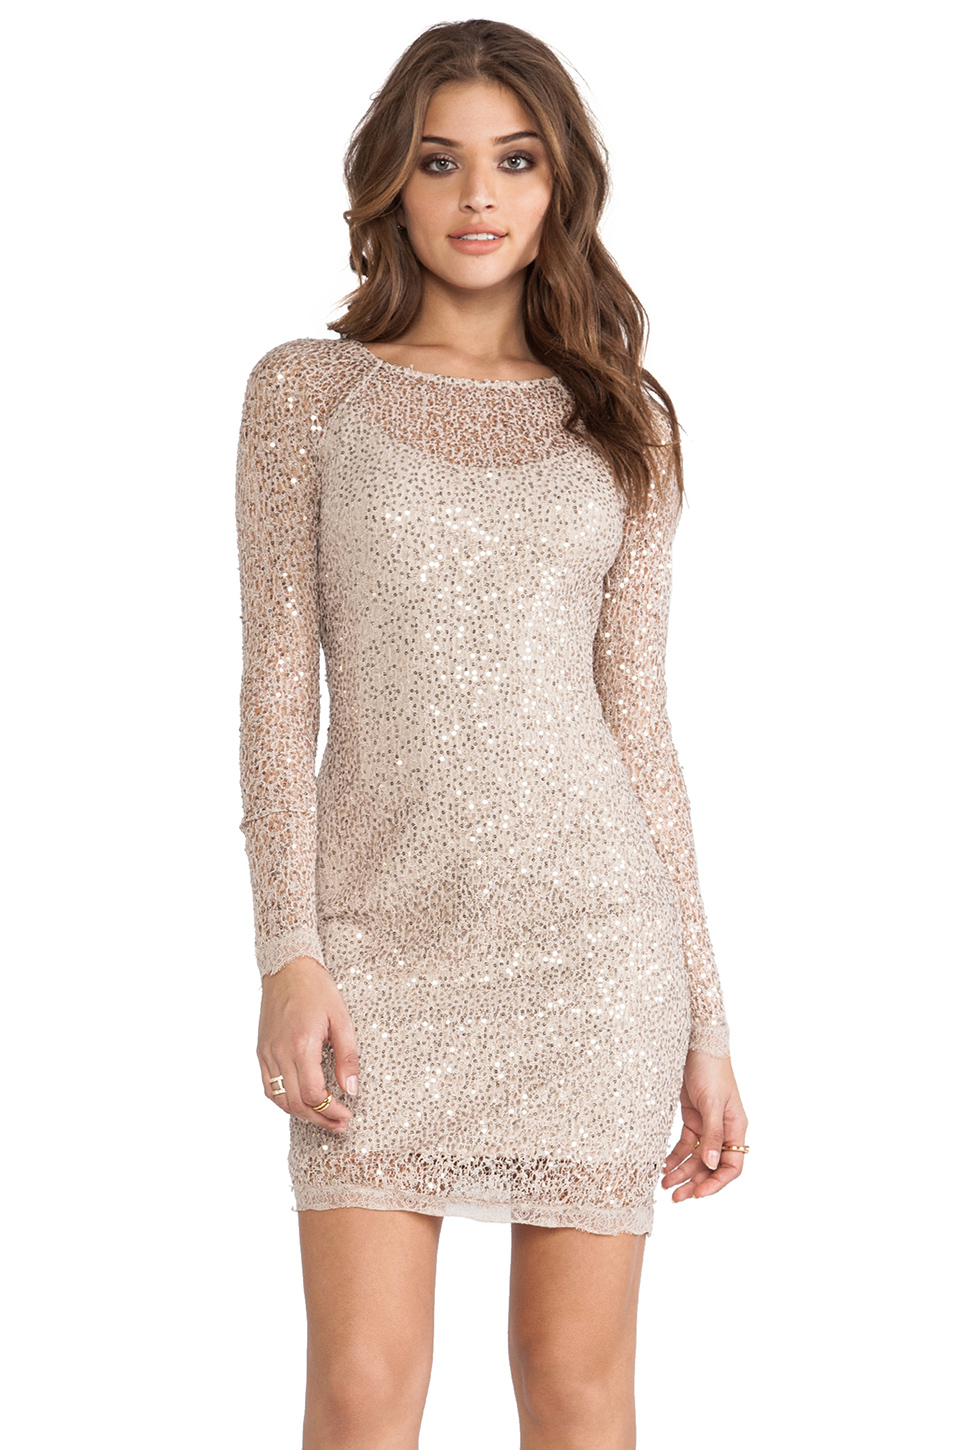 Scalloped Sequin Dress